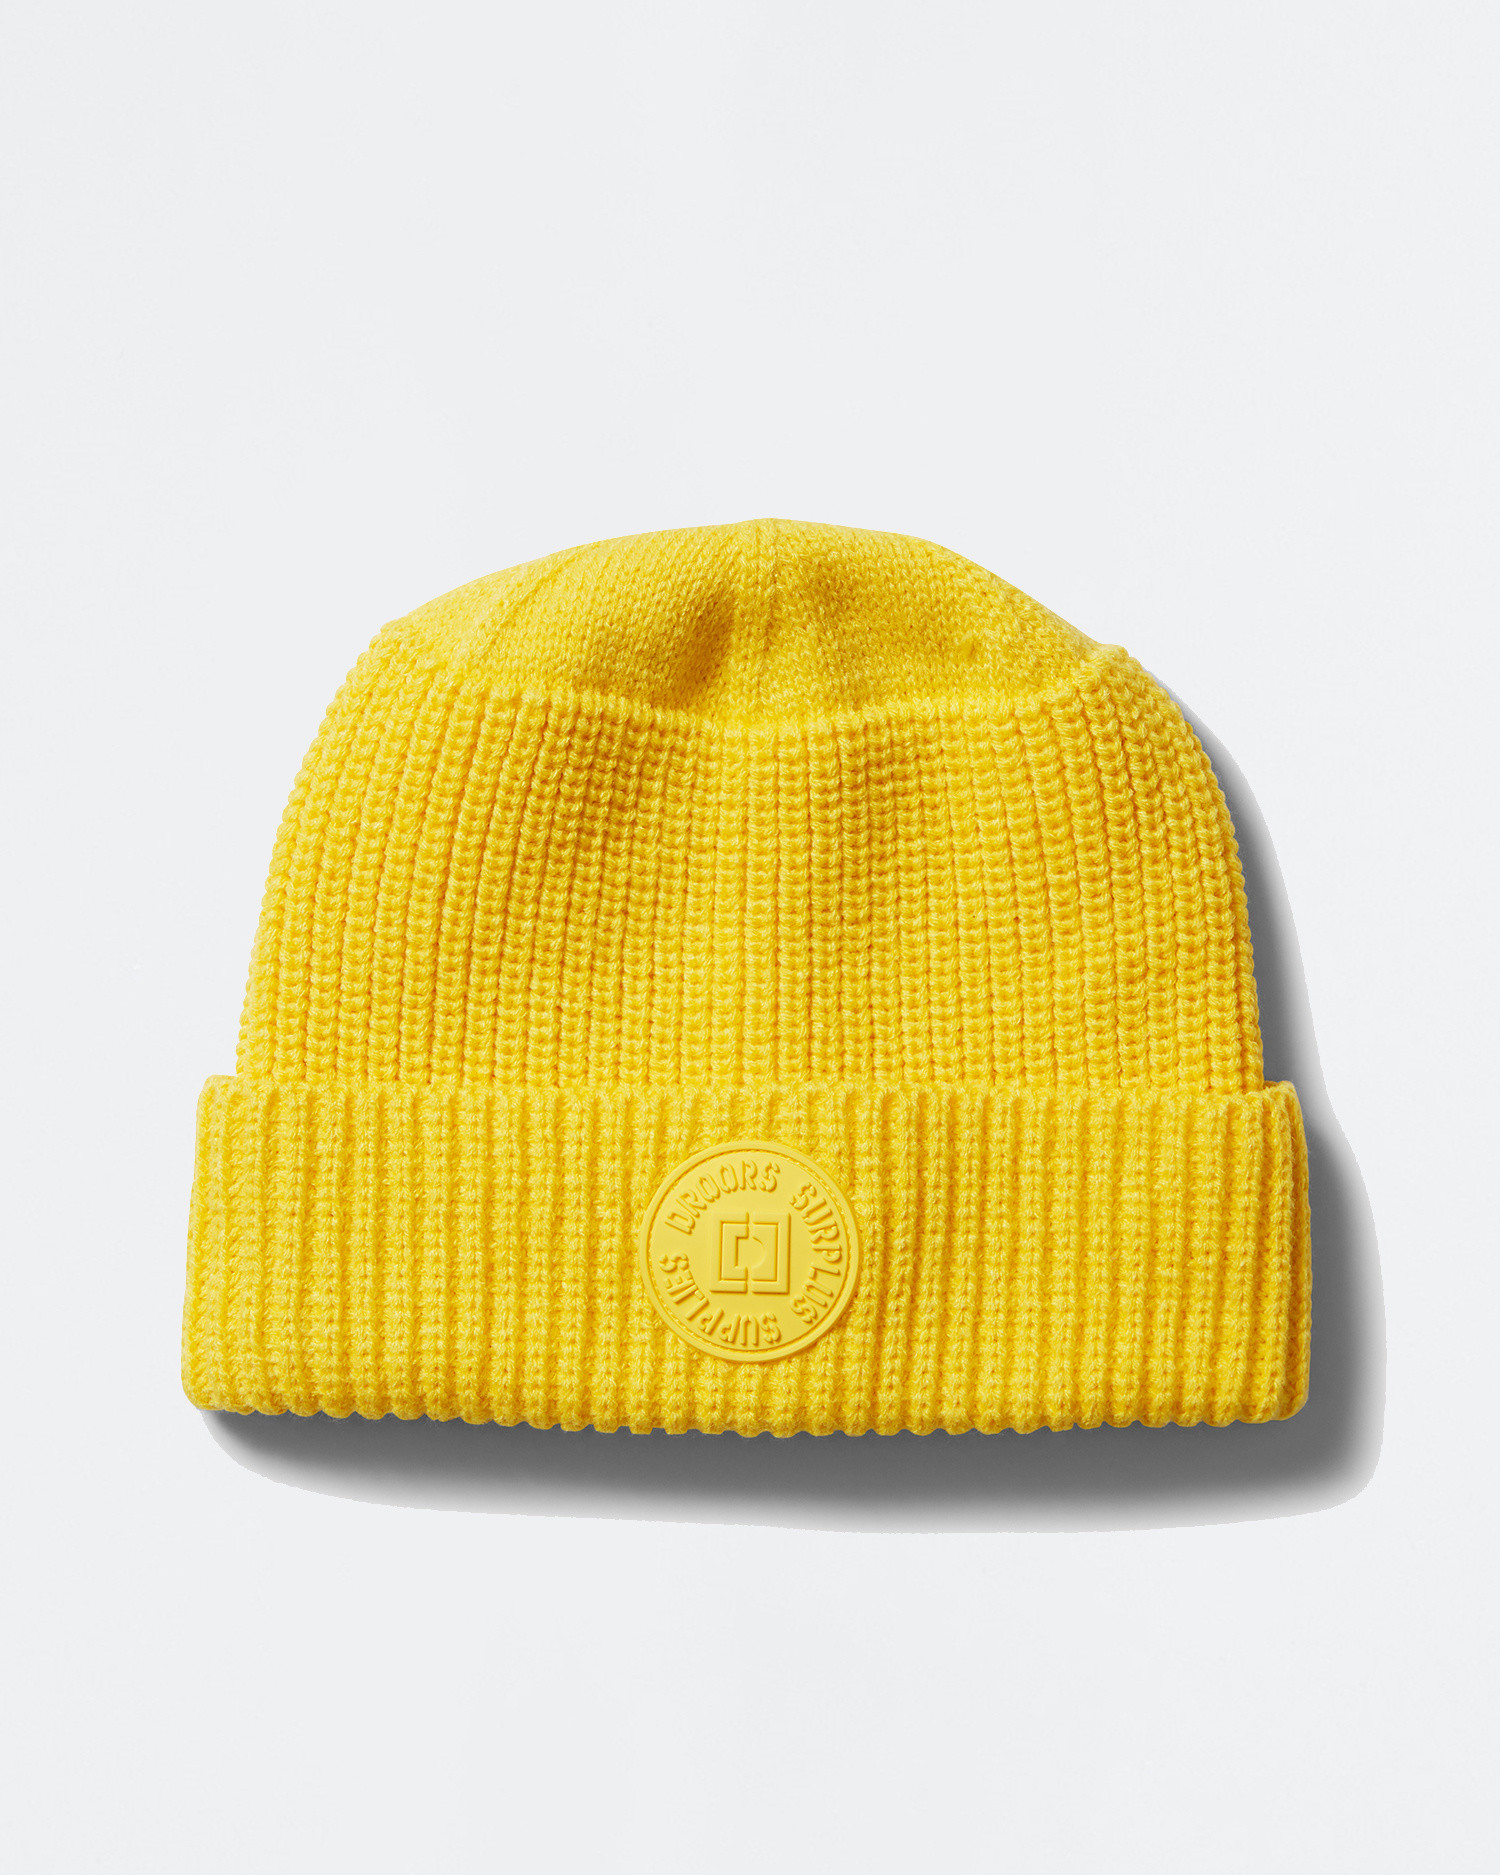 Droors Tonal Patch Beanie YHH0